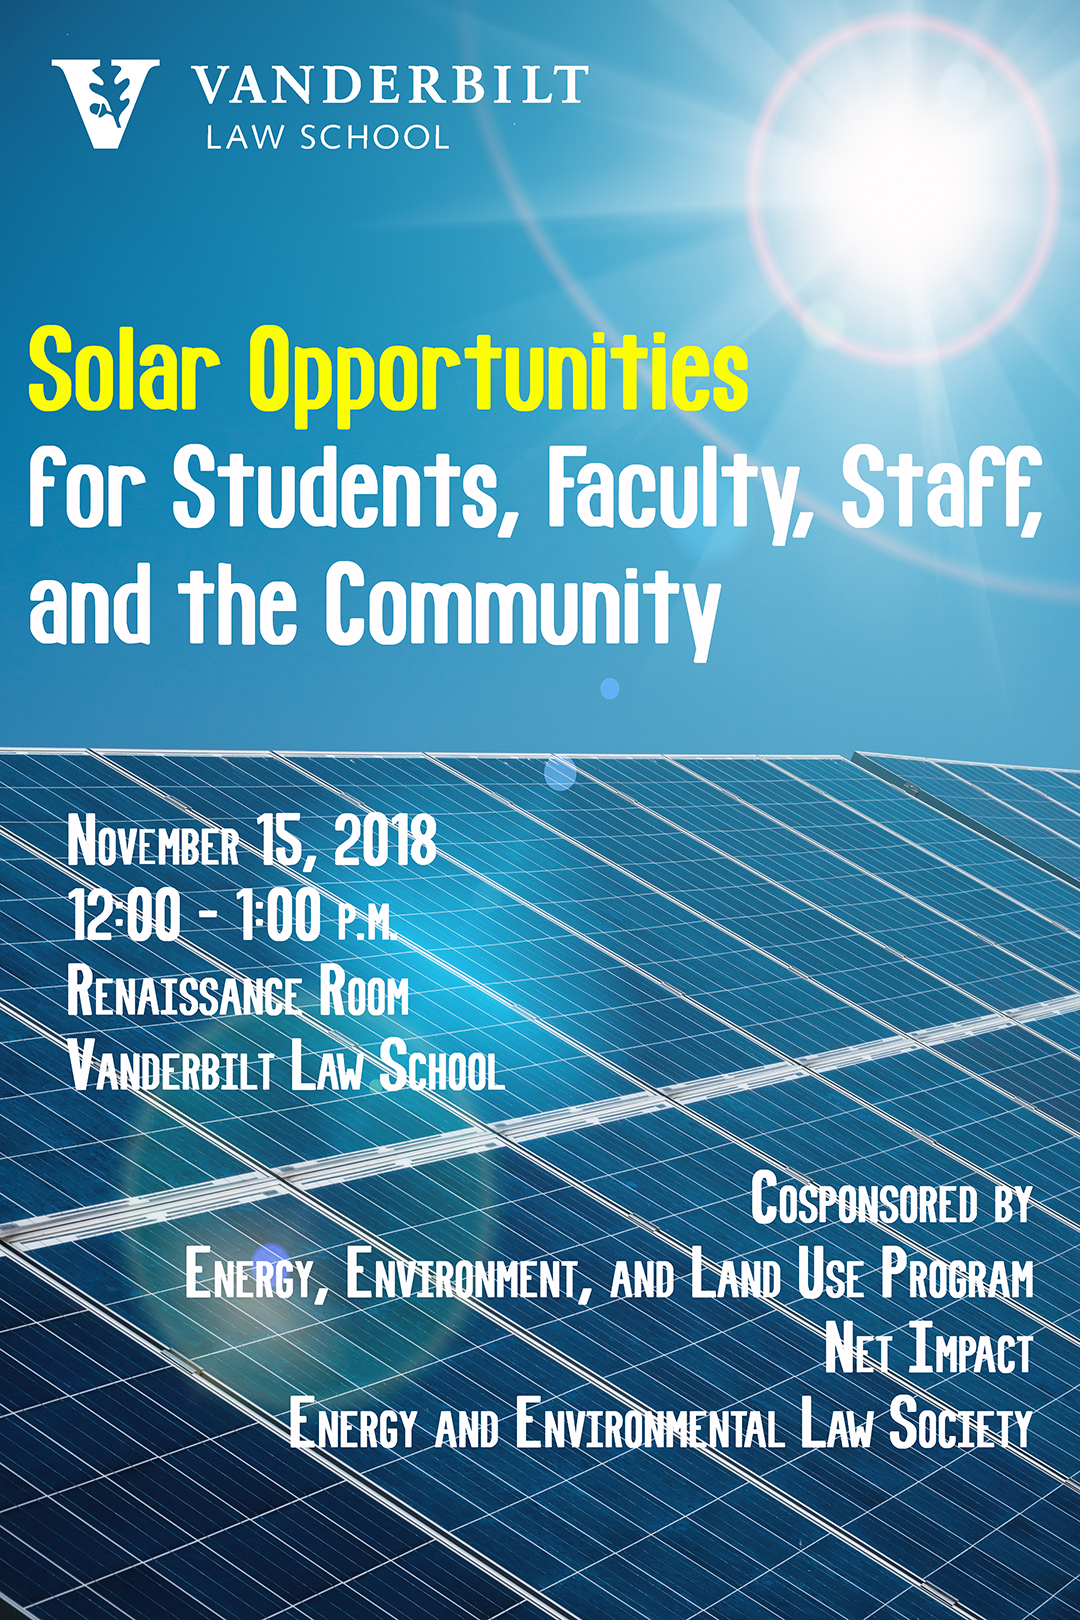 Solar Opportunities poster